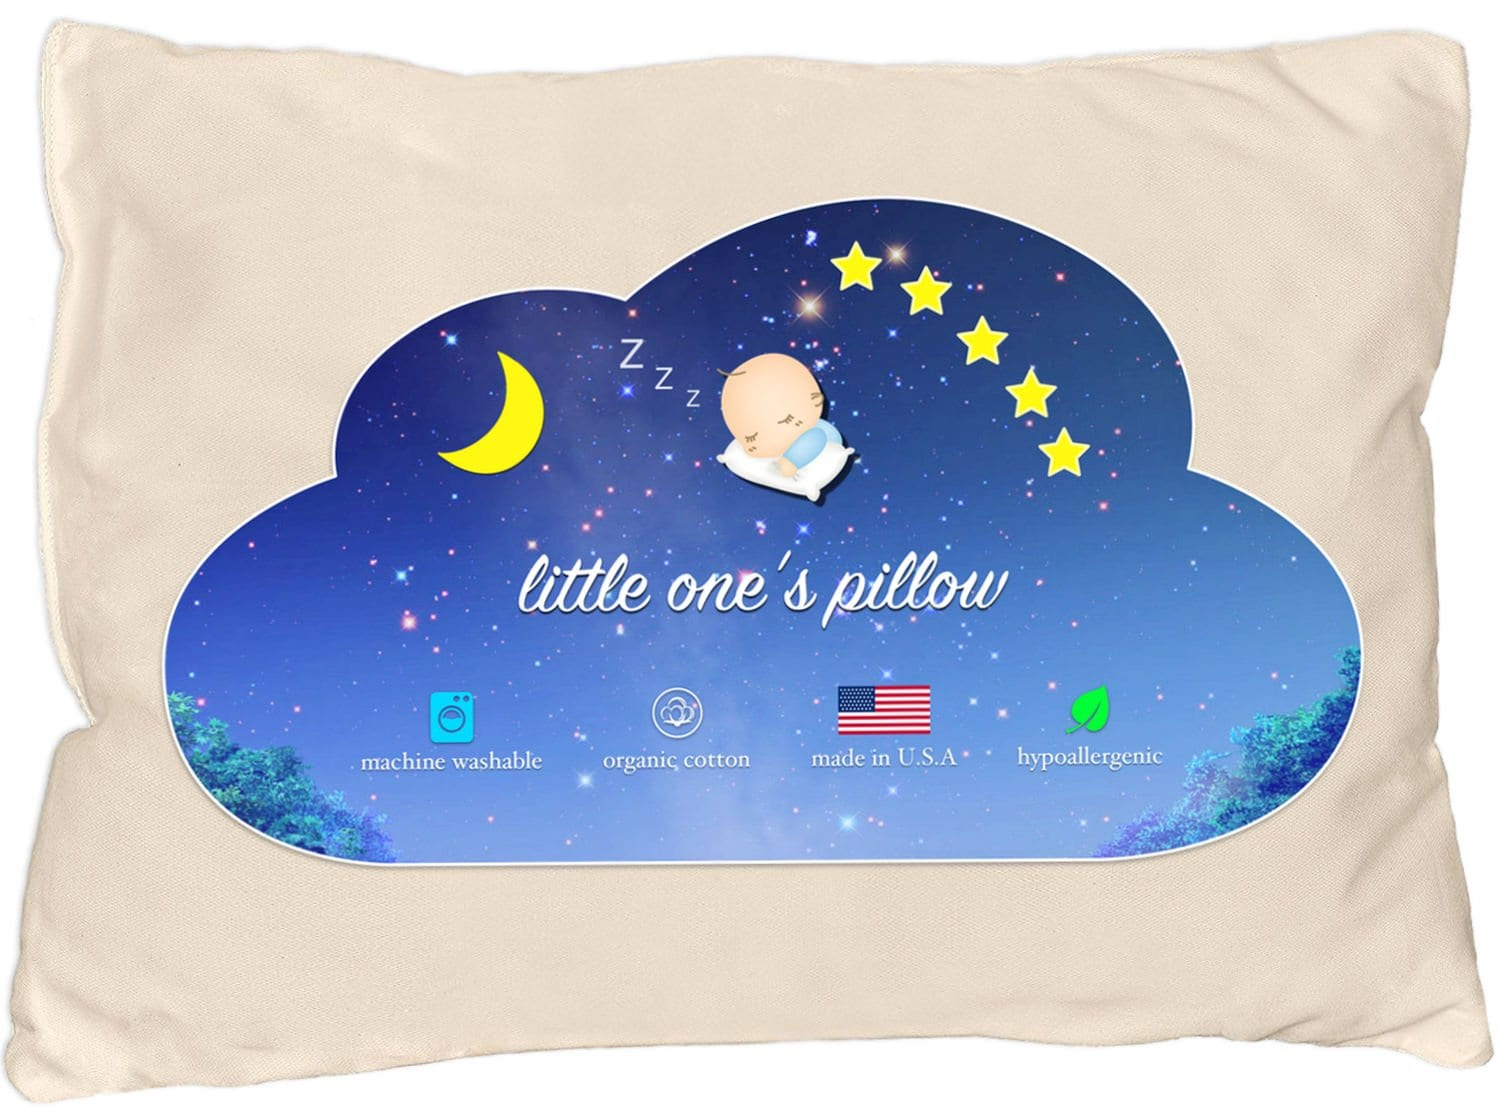 Little One's Pillow Best Flat Pillow review by www.dailysleep.org